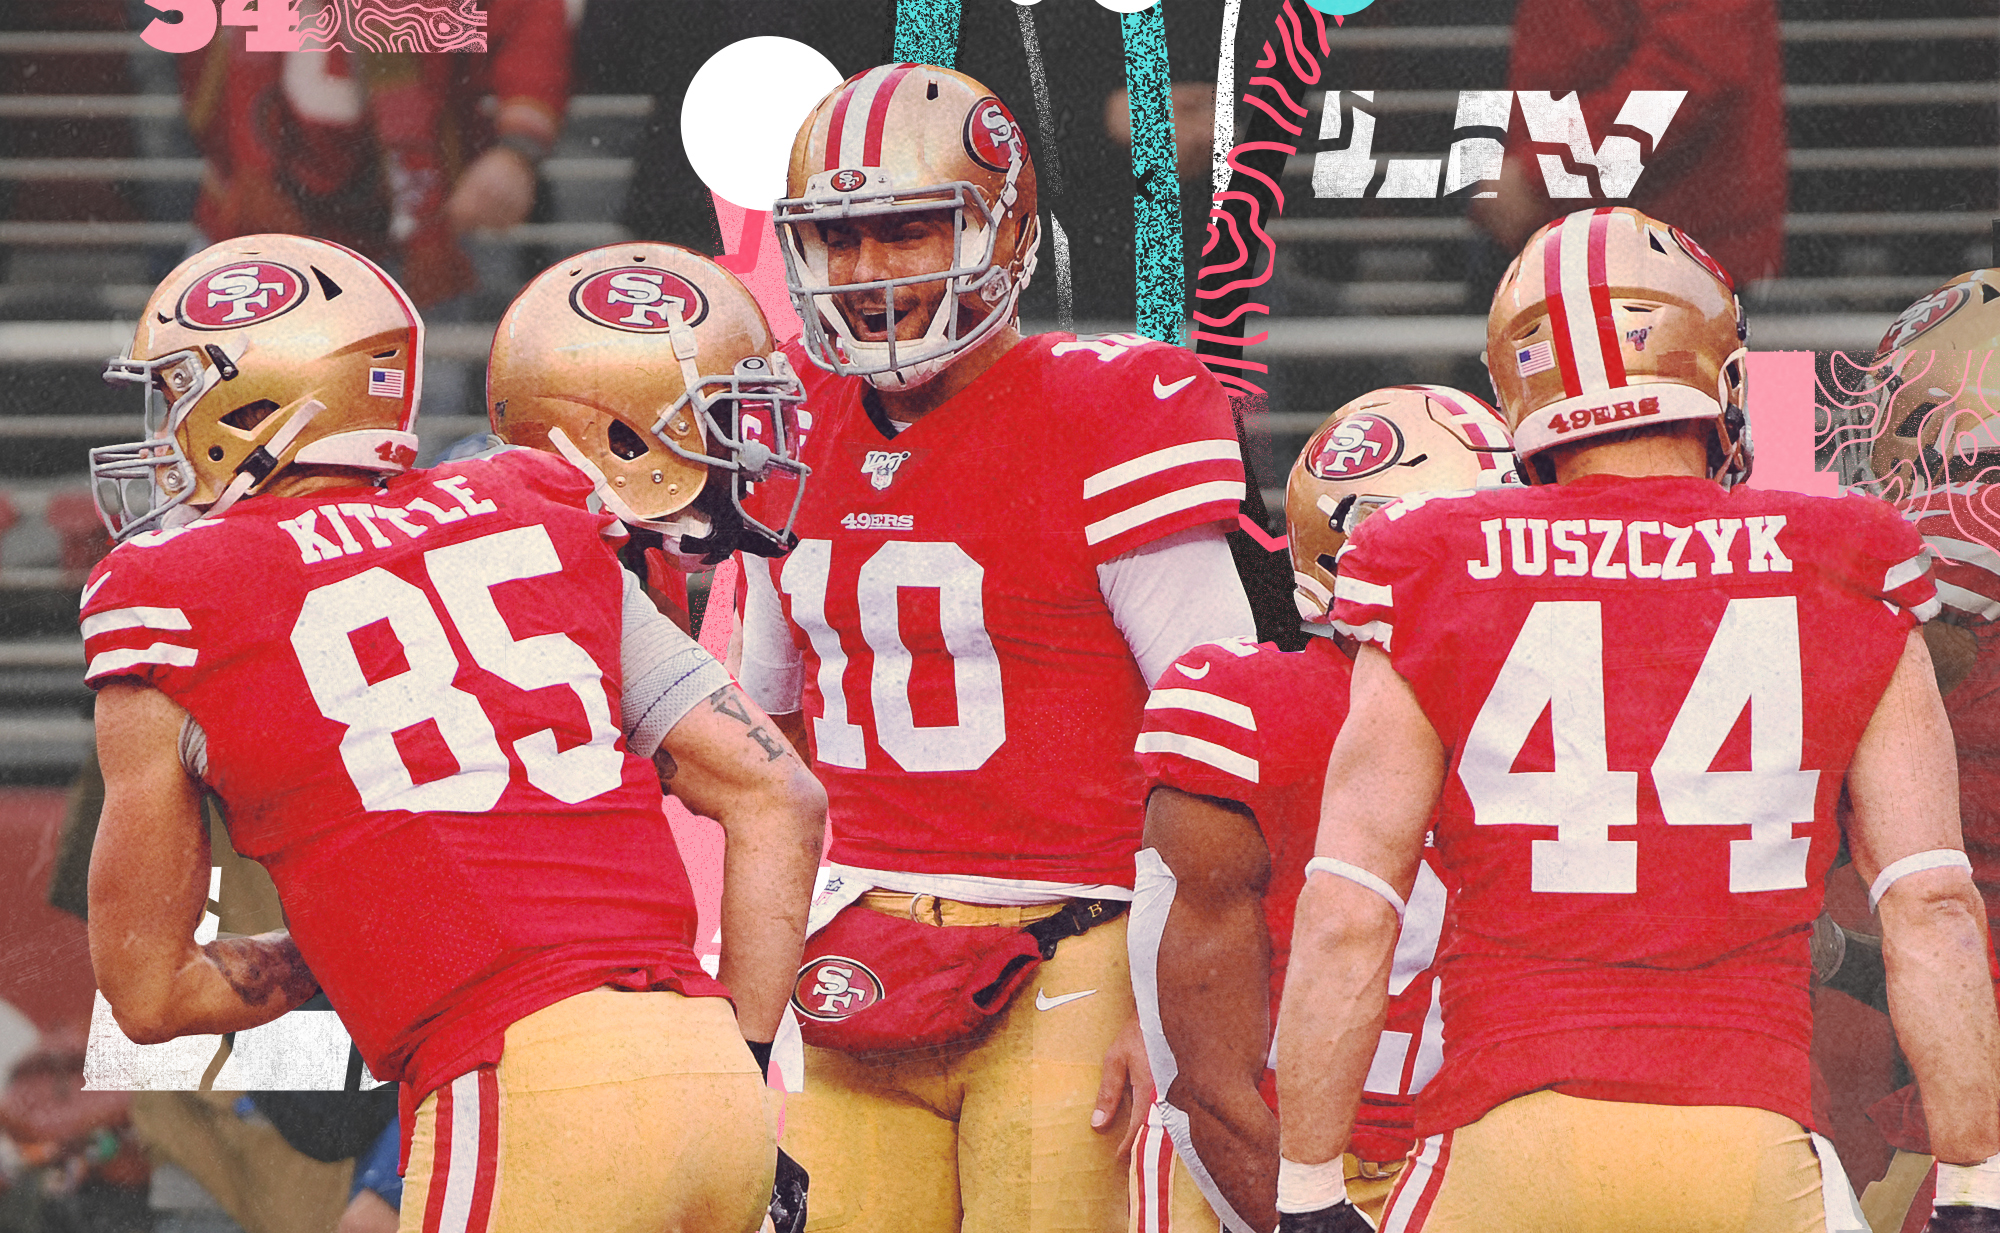 49ers offensive players huddle, including QB Jimmy Garoppolo, TE George Kittle, and FB Kyle Juszczyk, with pink, teal, and white lines in the background